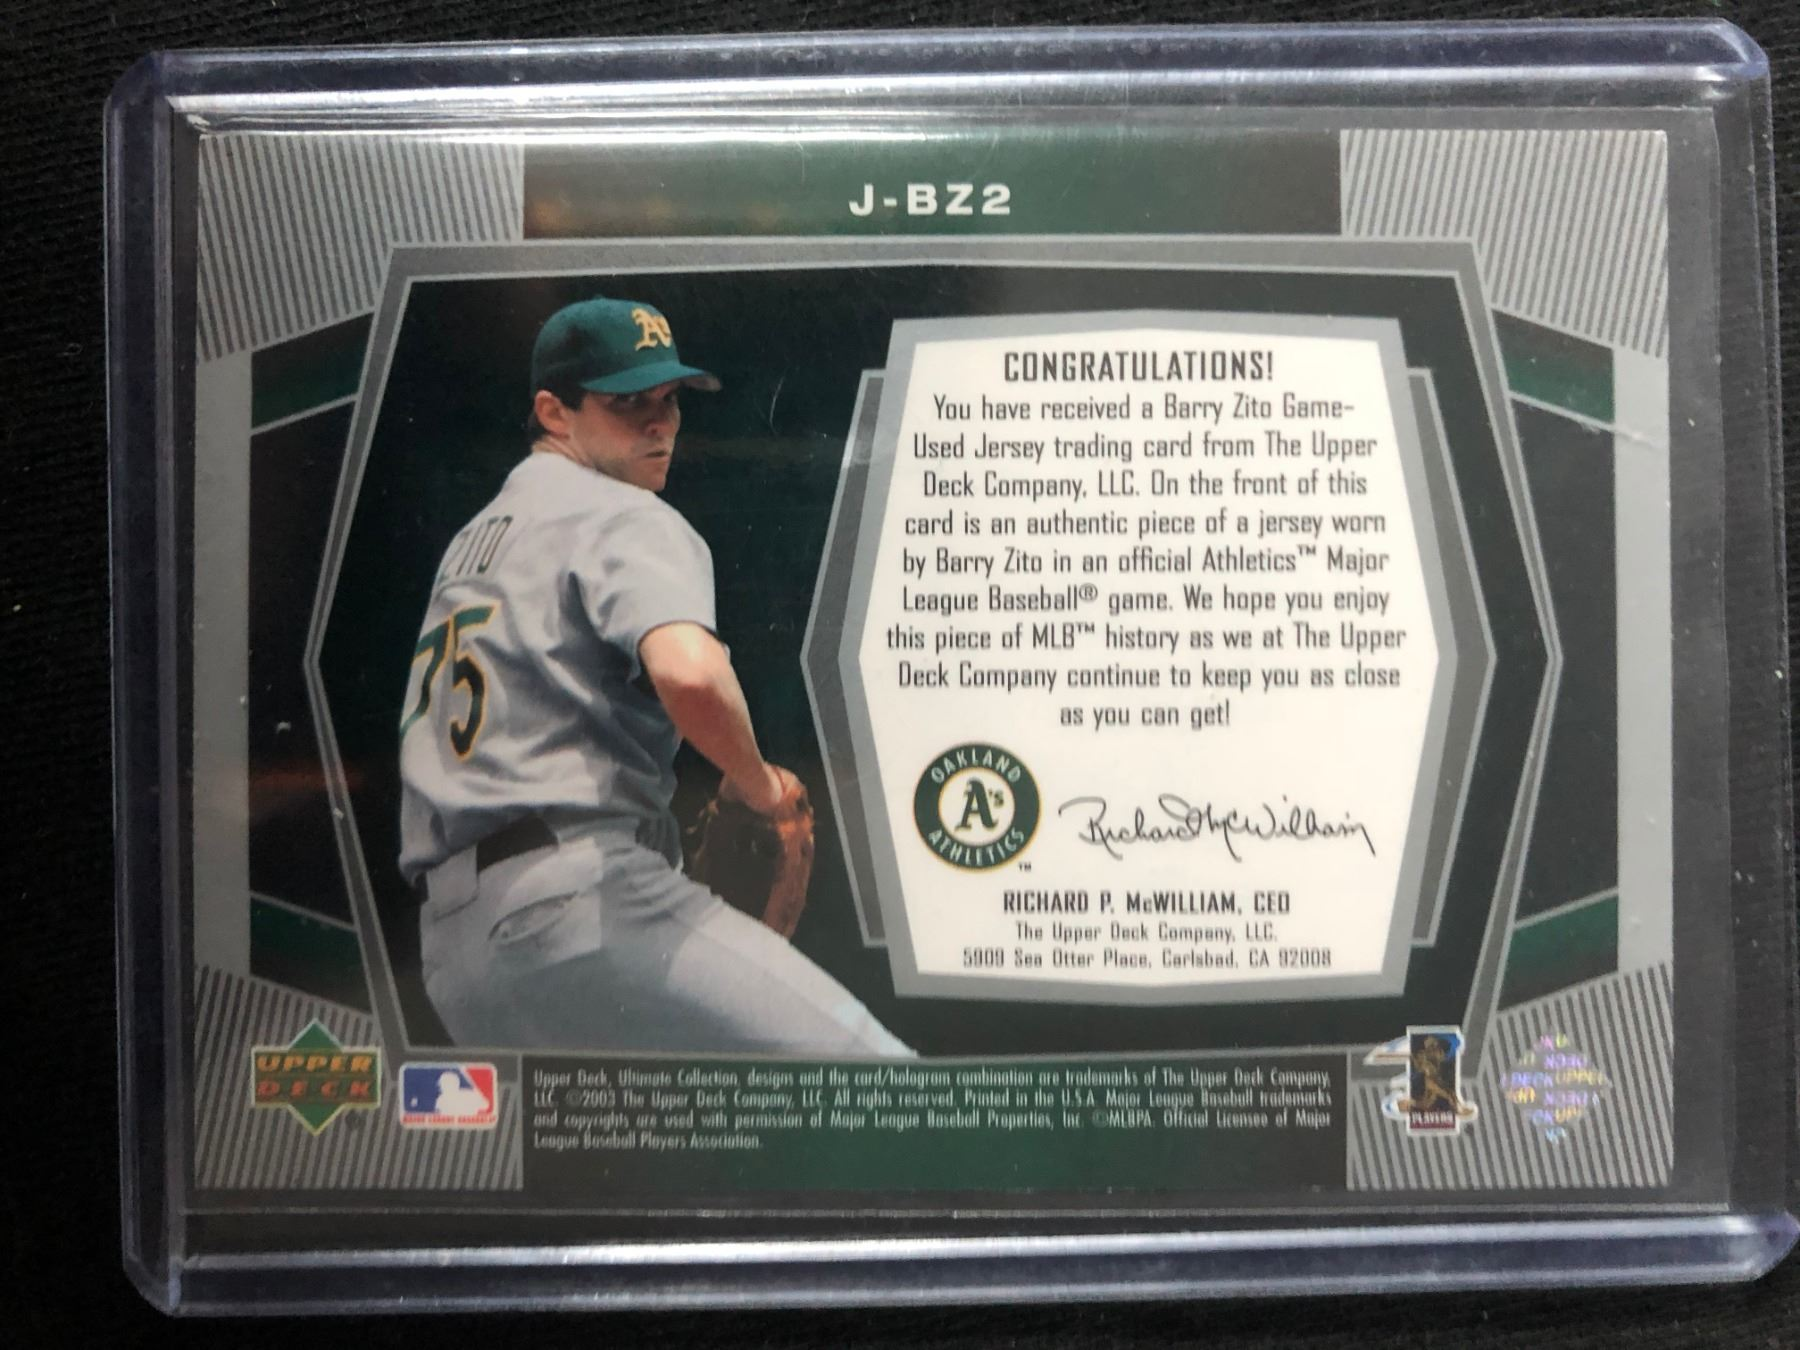 2003 Upper Deck Ultimate Collection Jersey J Bz2 Barry Zito Baseball Card